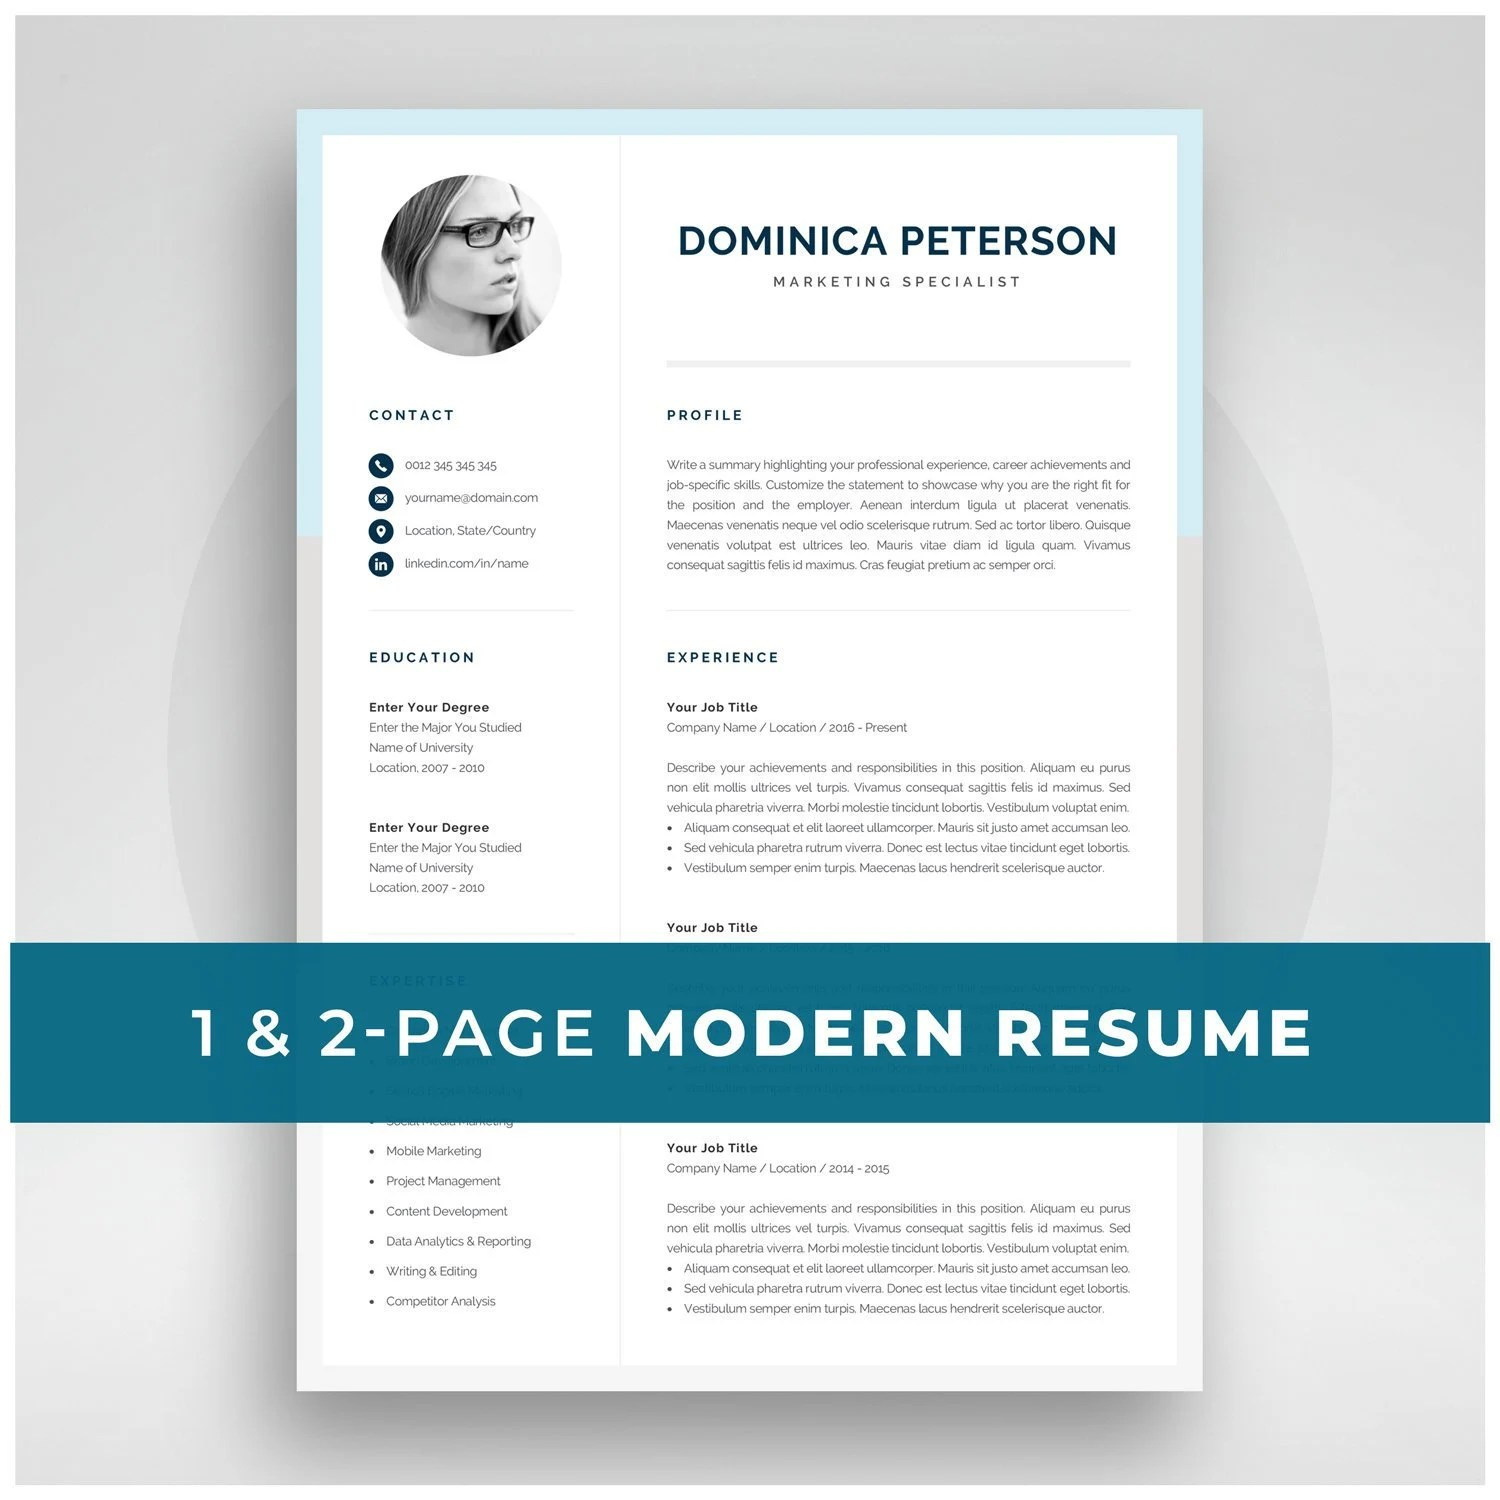 Modern Resume Template Creative CV with Photo 1 2 Page Etsy